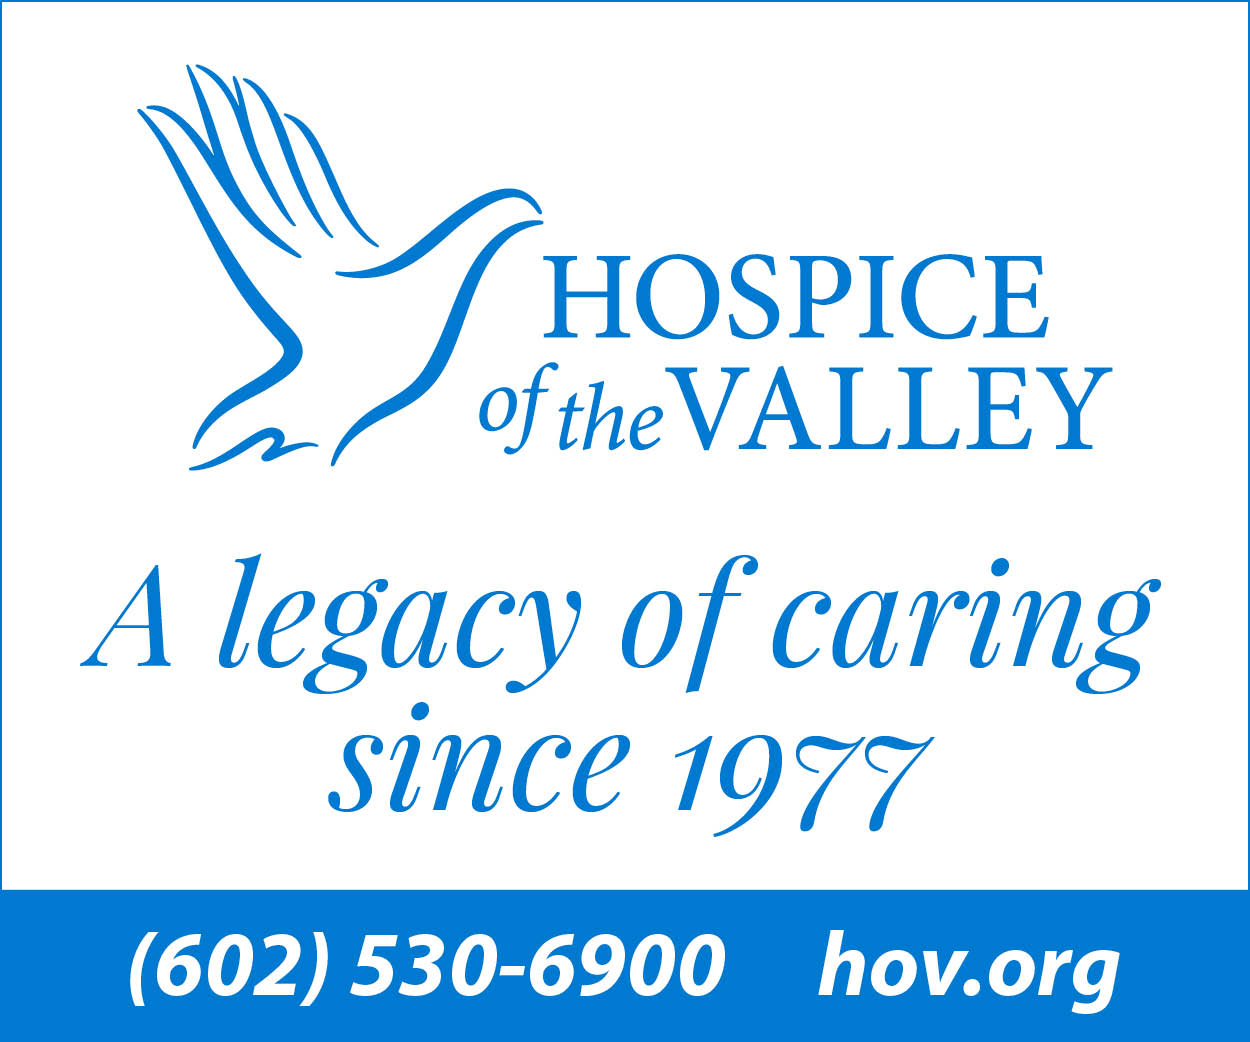 Visit Hospice of the Valley medium rectangle